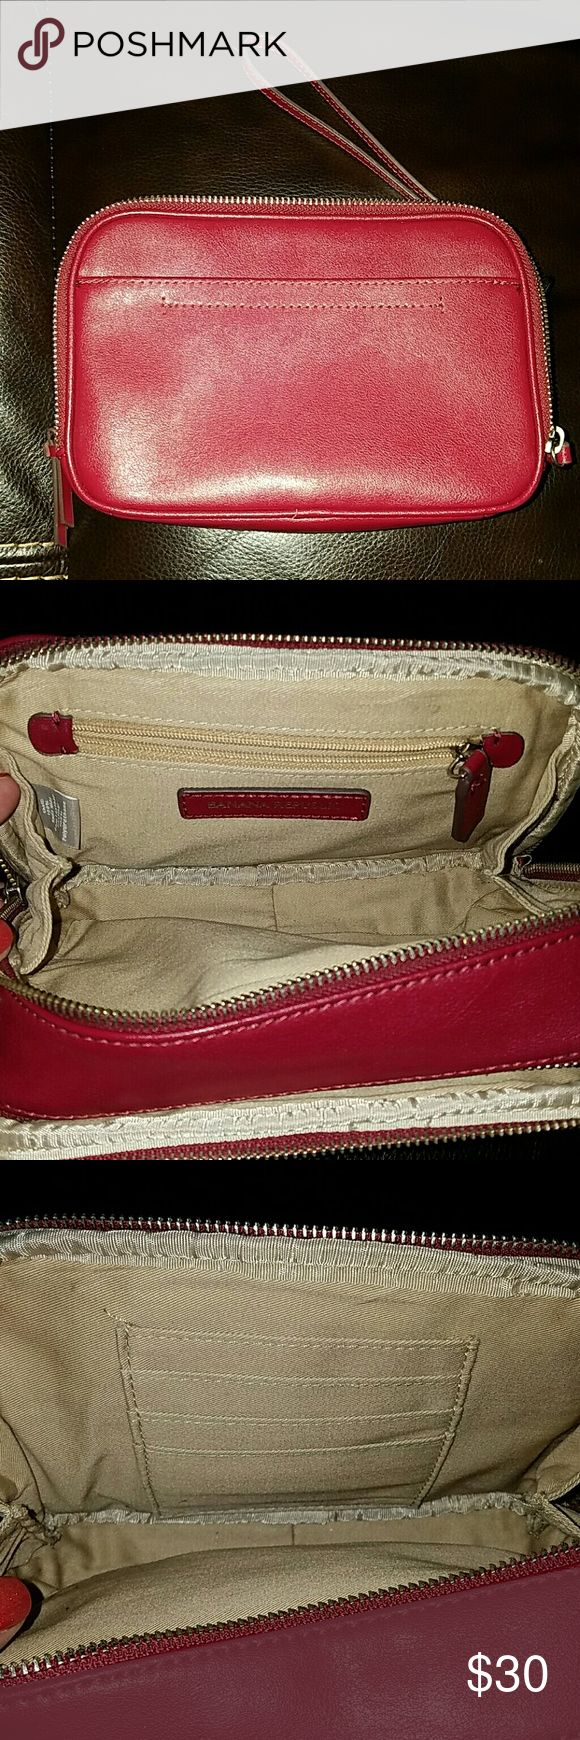 Banana Republic Large Wristlet Gorgeous red structured wristlet,  carries makeup,  credit cards and money. A must have! Banana Republic Bags Clutches & Wristlets